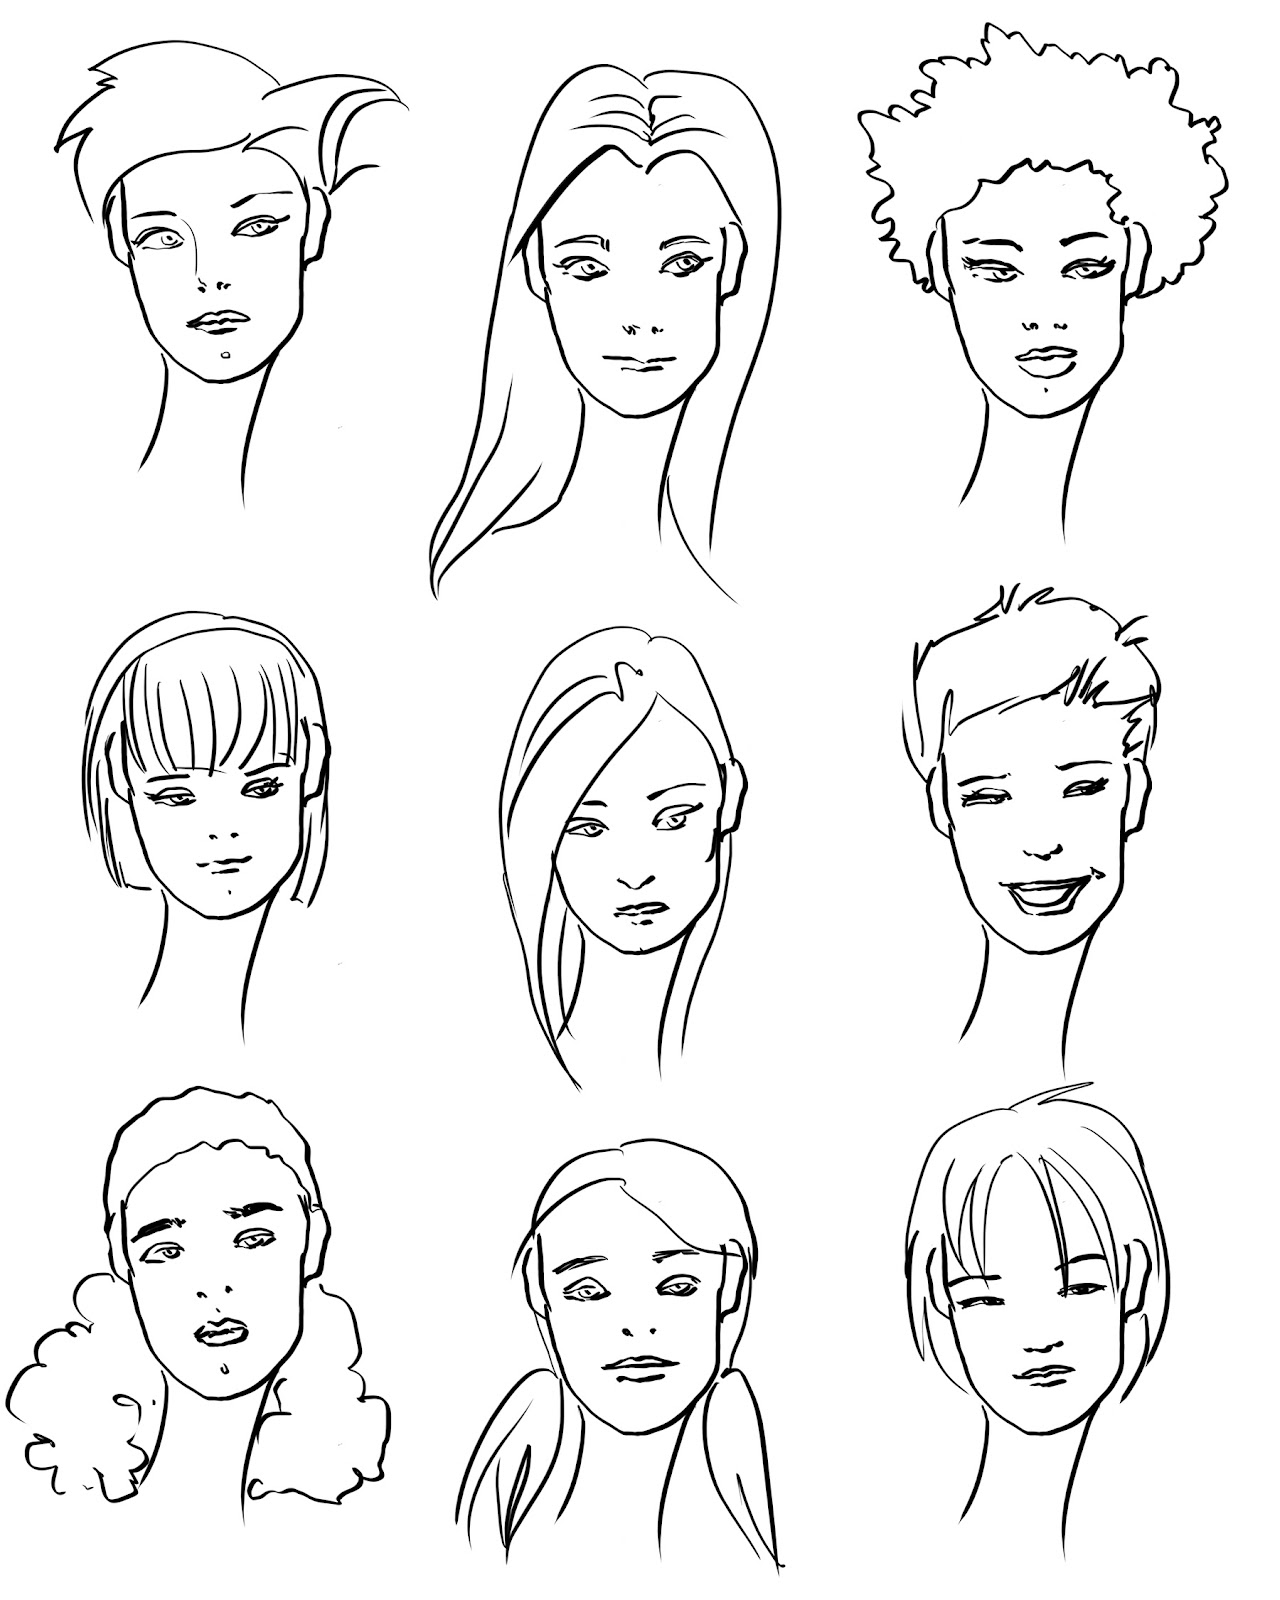 How To Draw Fashion: One Template - Infinite Possibilities!